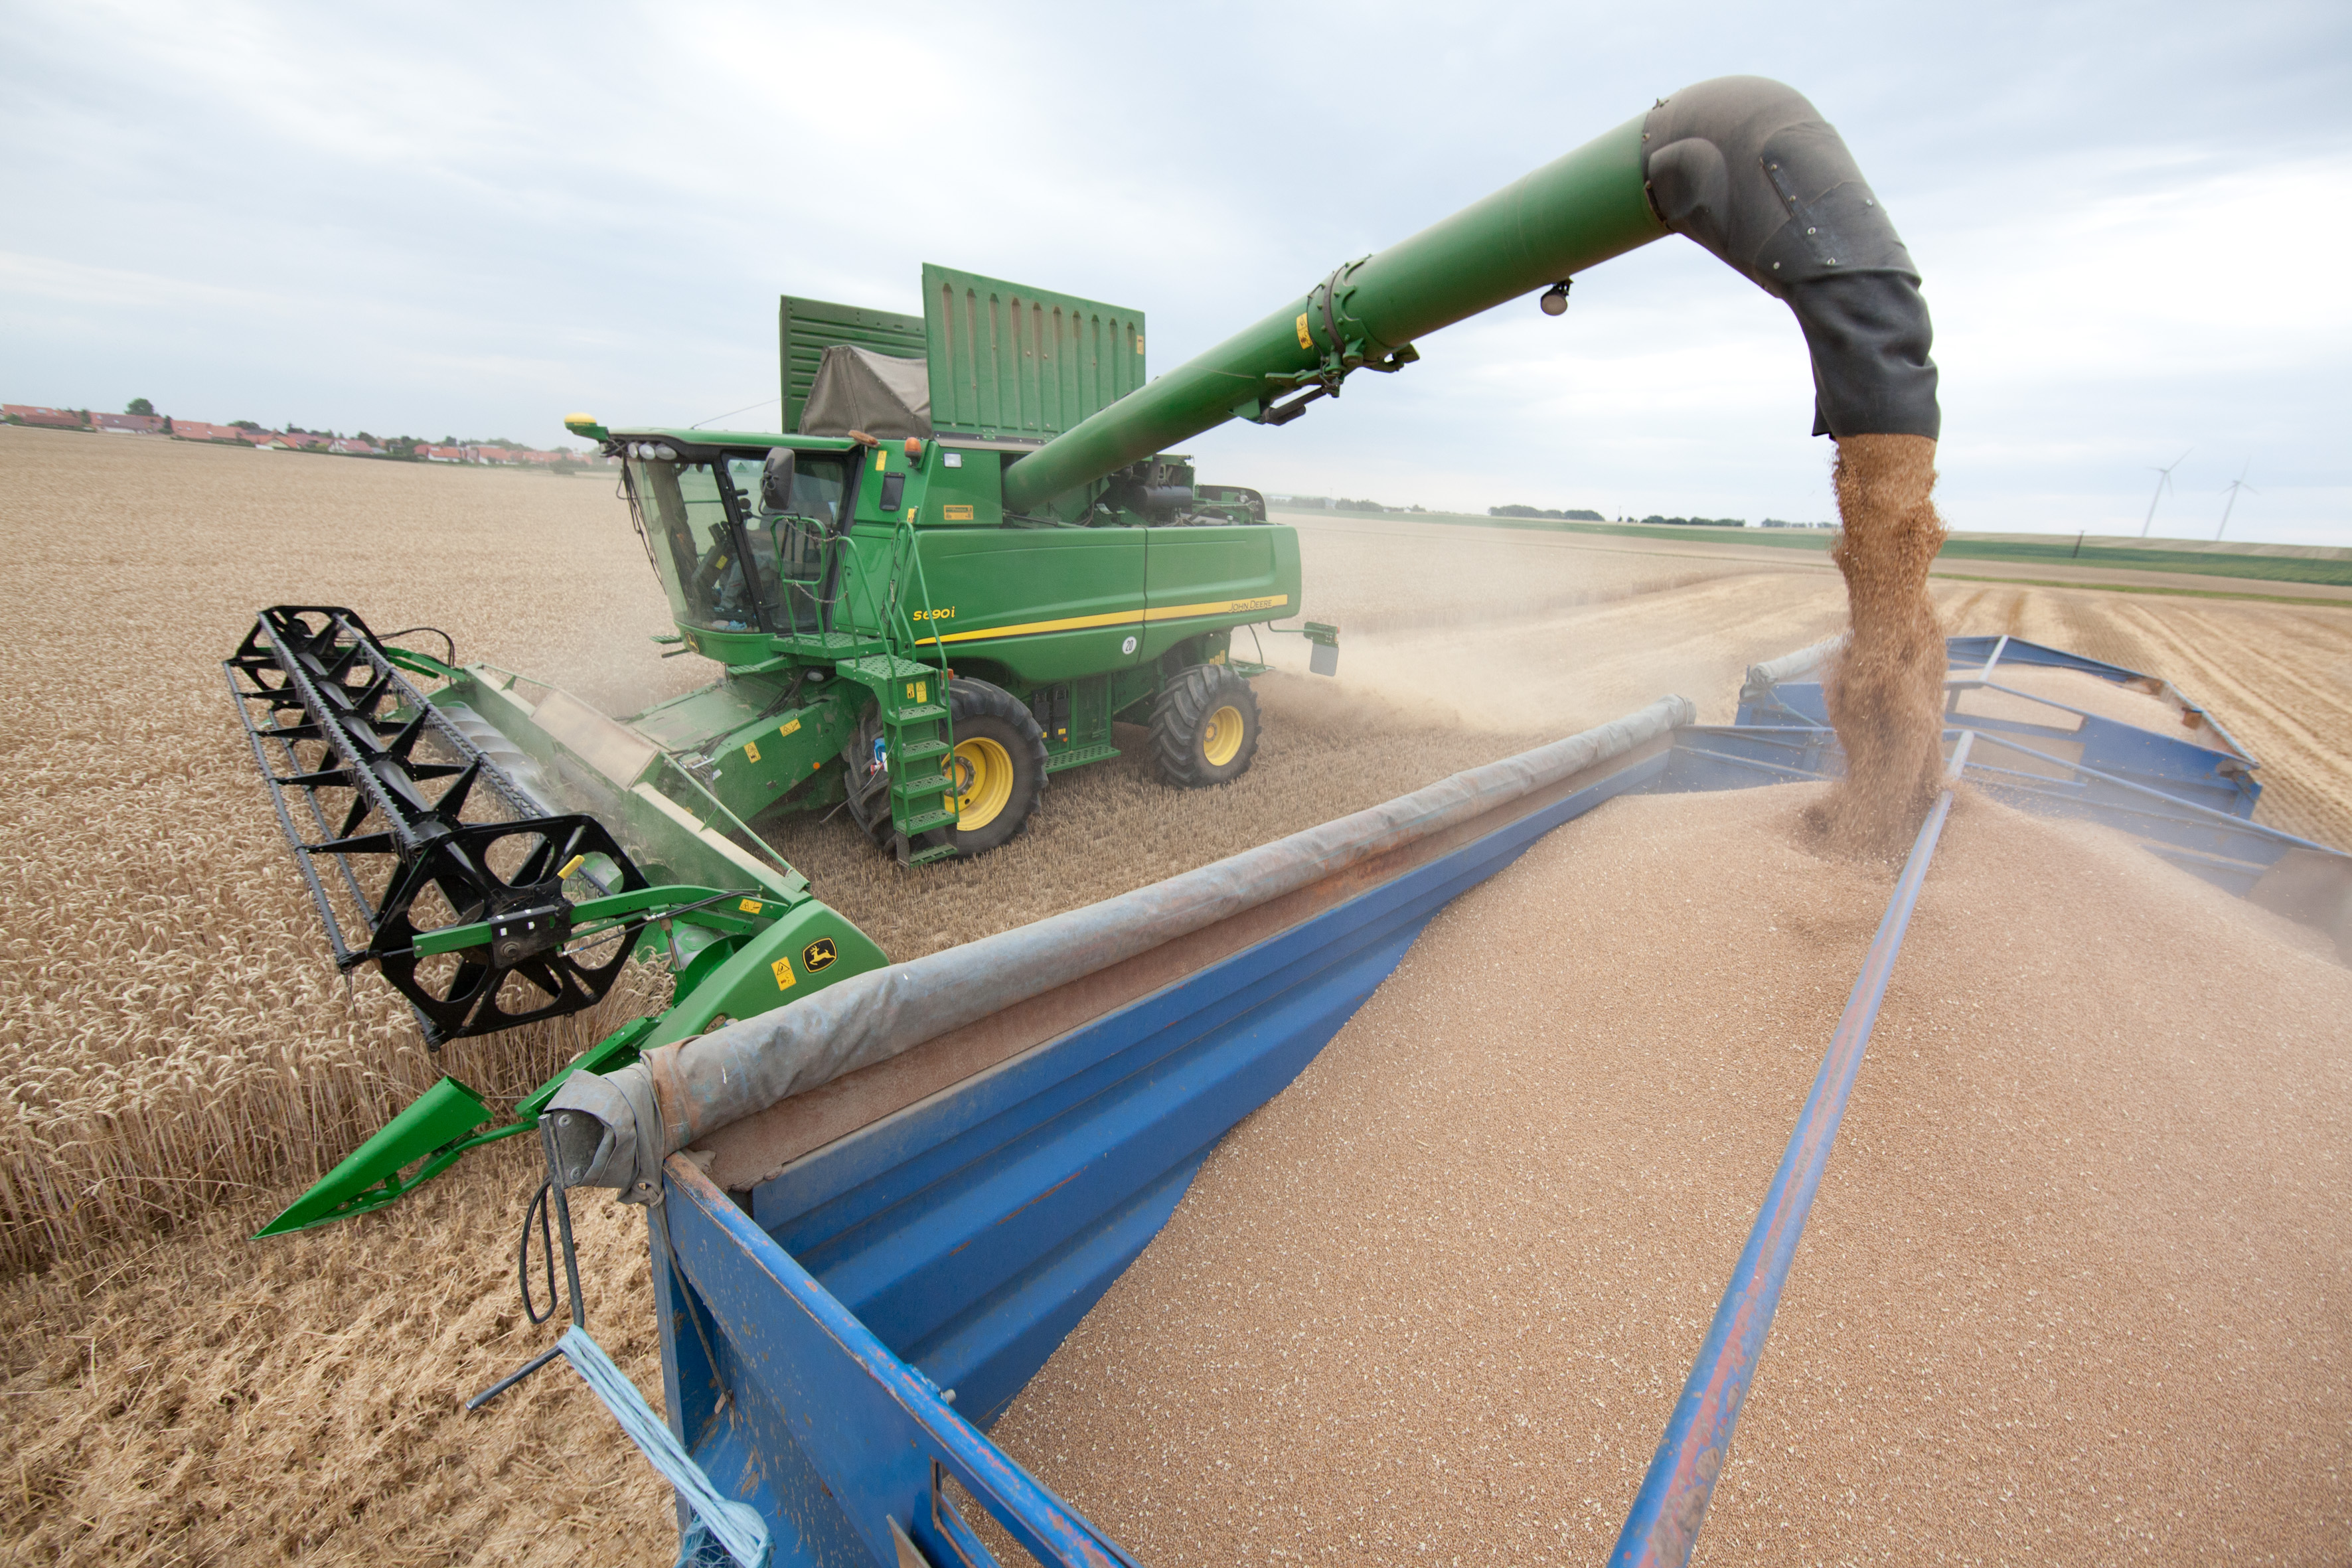 Create a safety plan during harvest